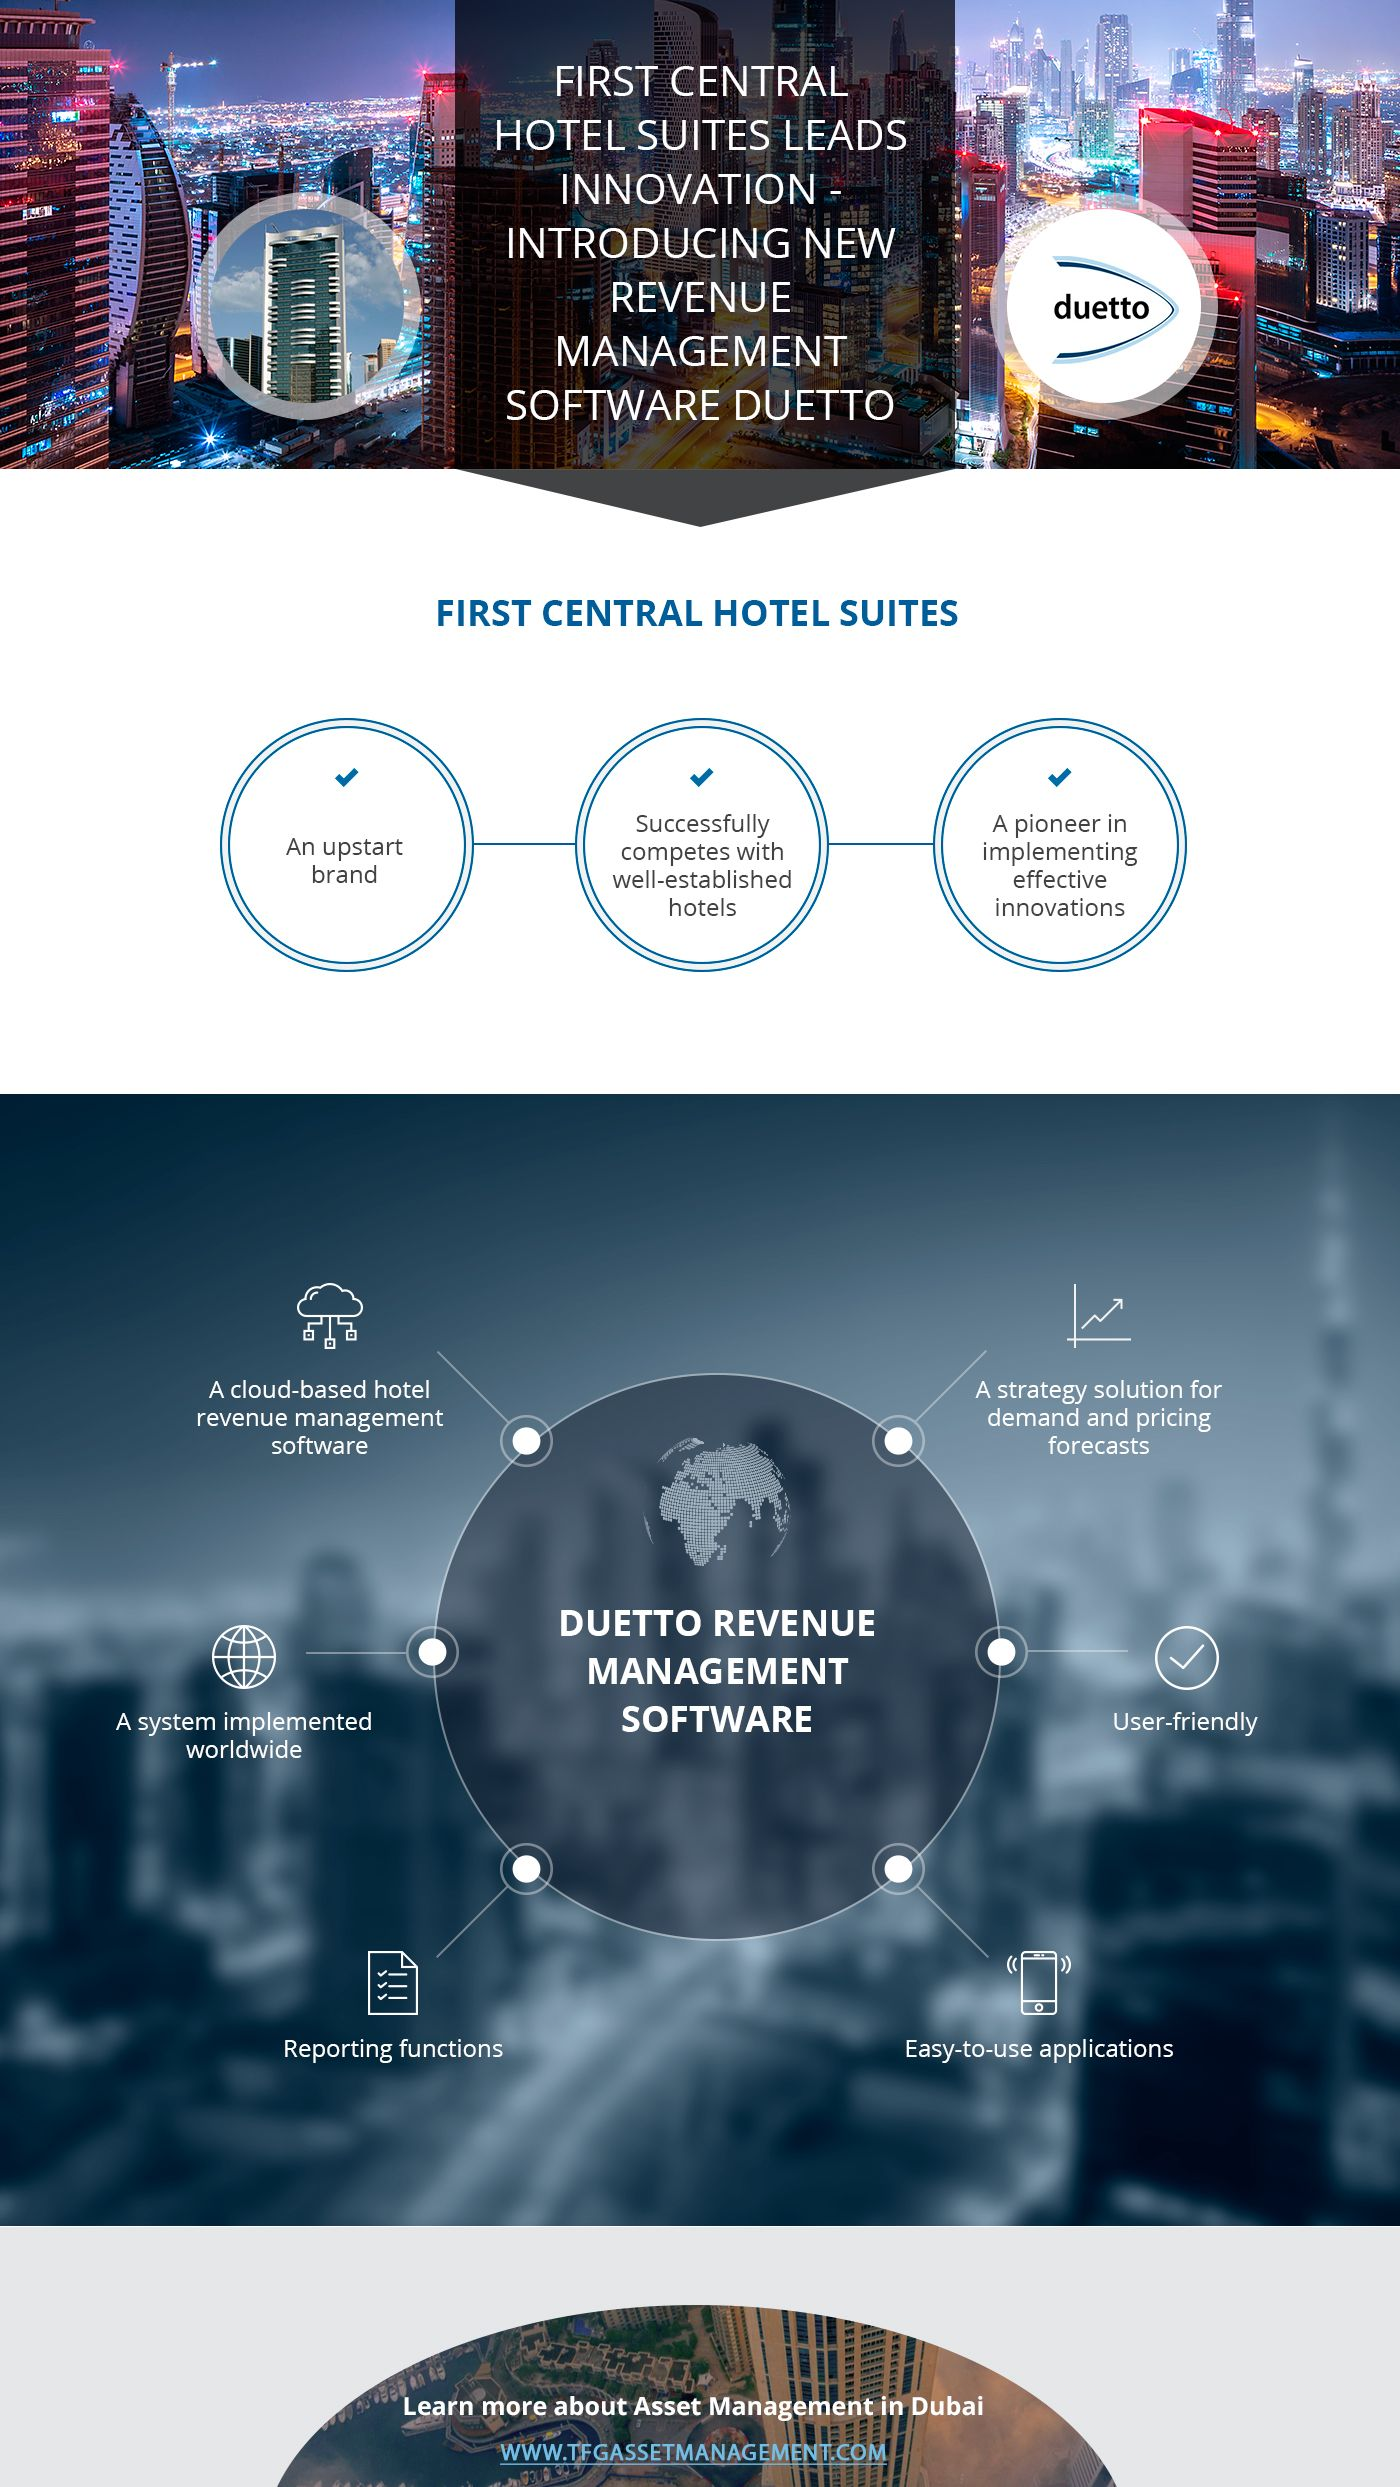 First Central Hotel Suites Leads Innovation Introducing New Revenue Management Software Duetto Source Https Www Tfgassetmanagement Com News Our Portfolio U